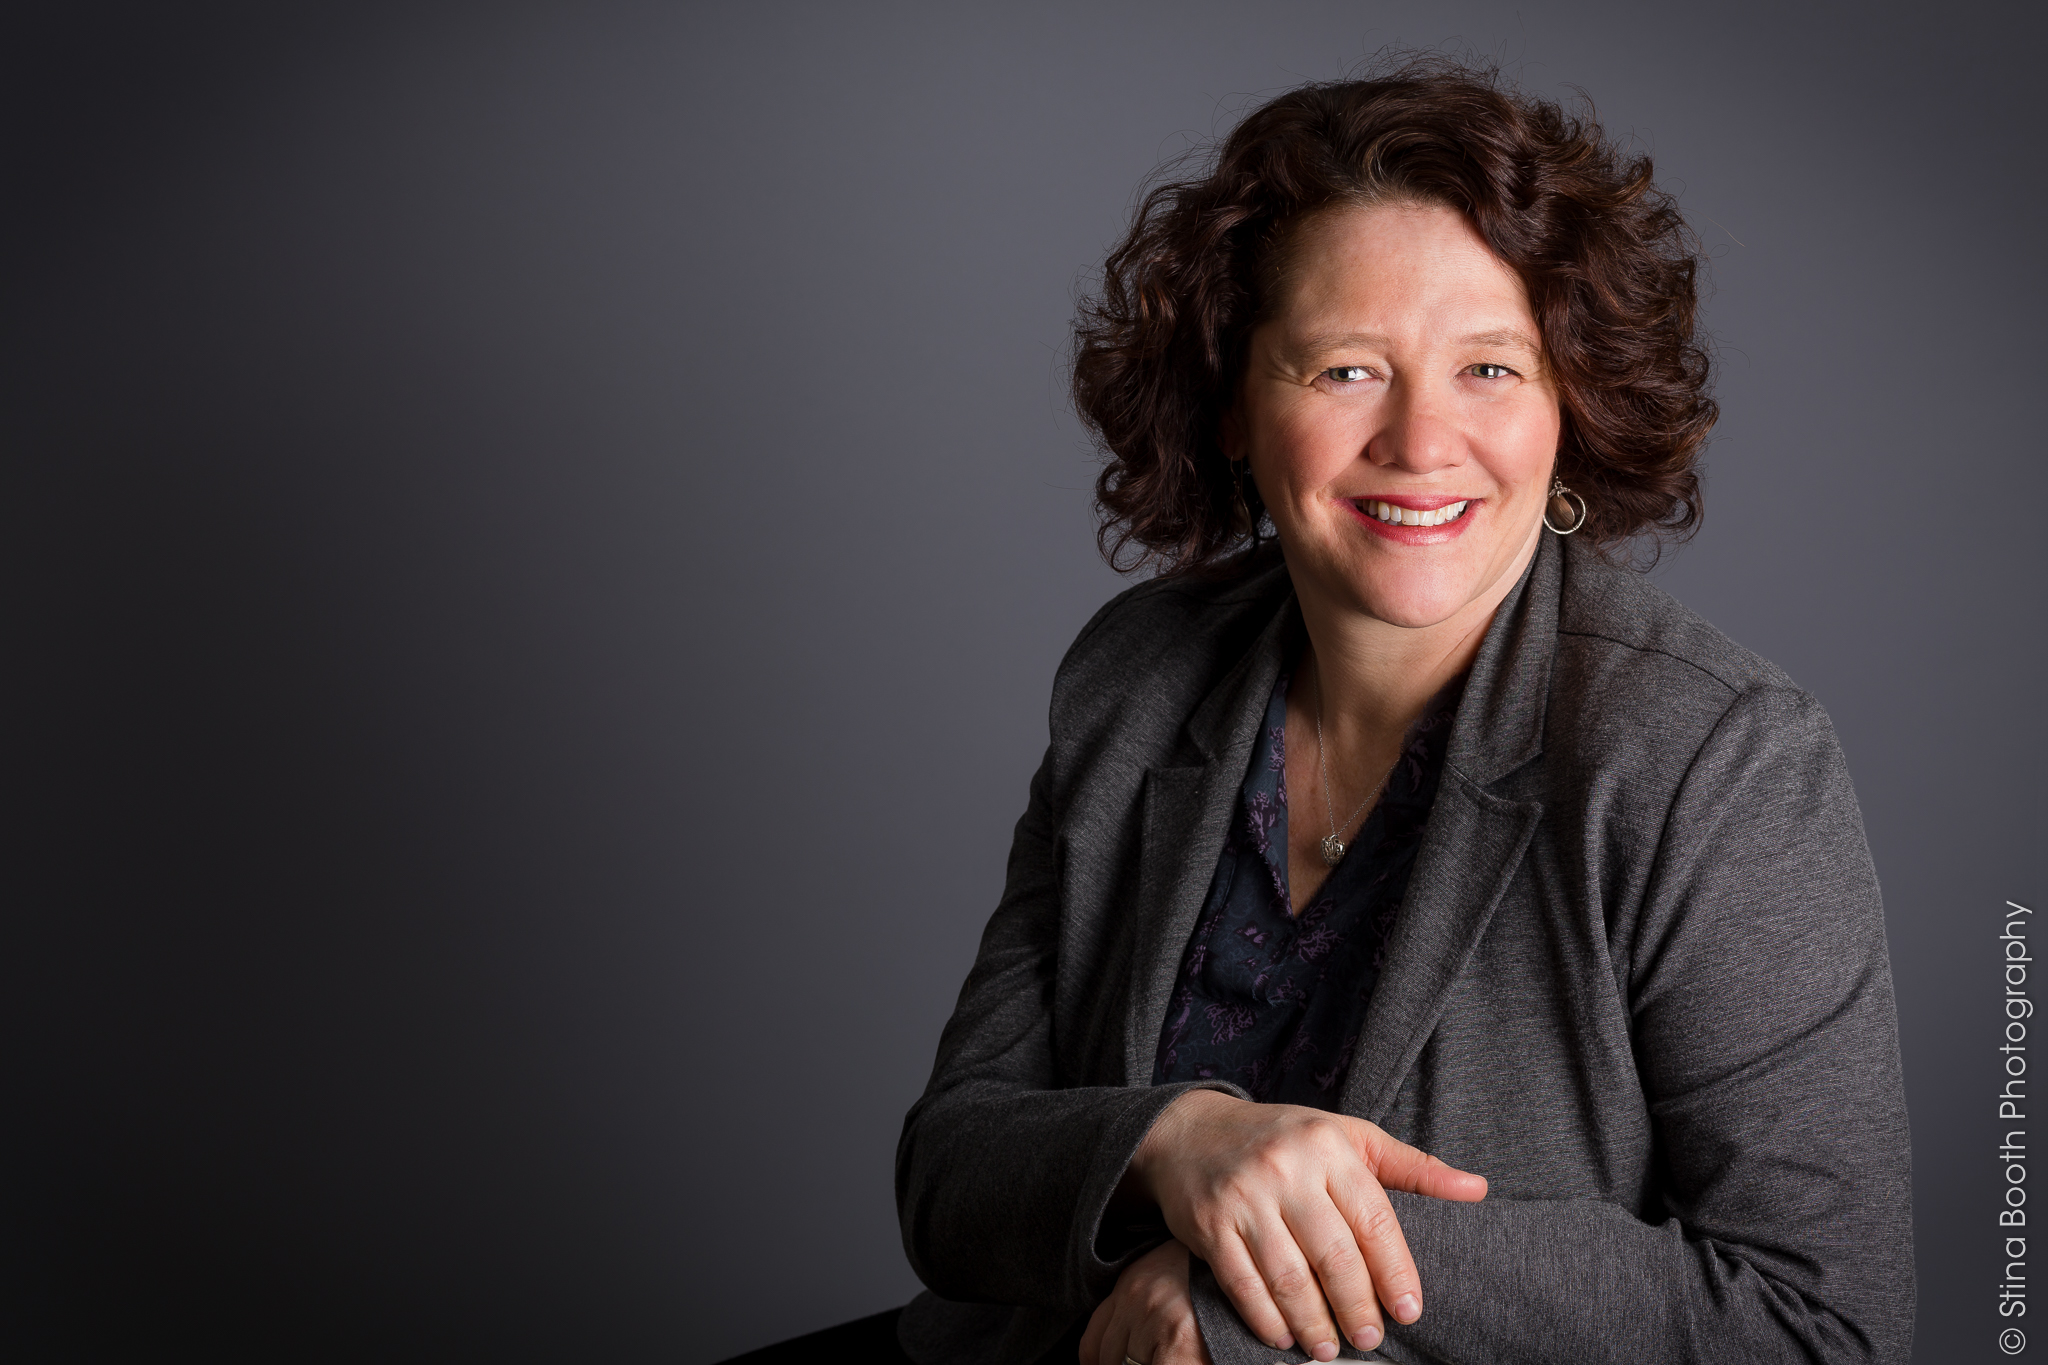 Portrait of Denise Smith by Vermont commercial photographer Stina Booth